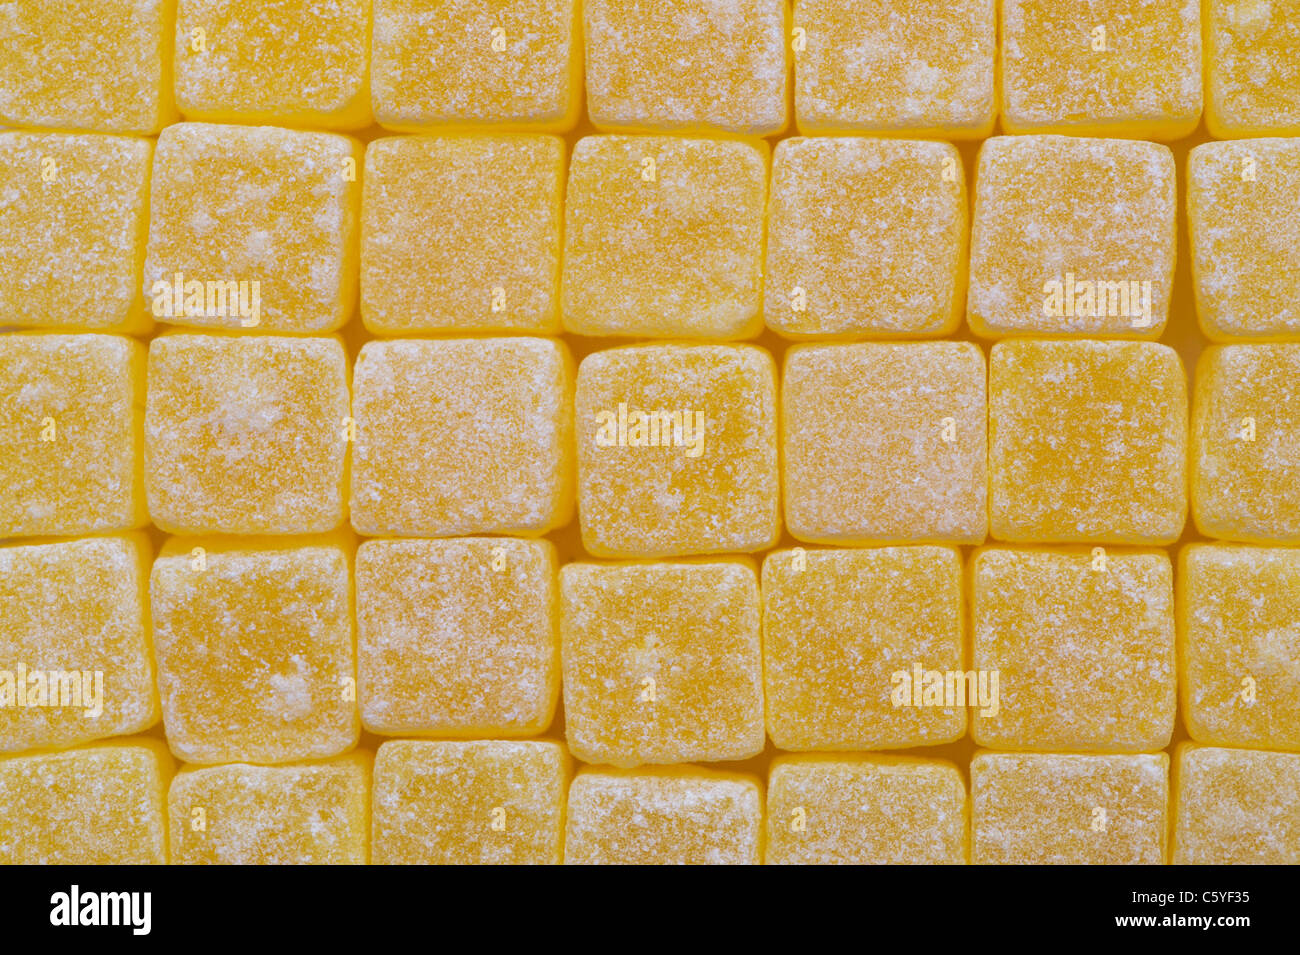 Pineapple cubes - Stock Image